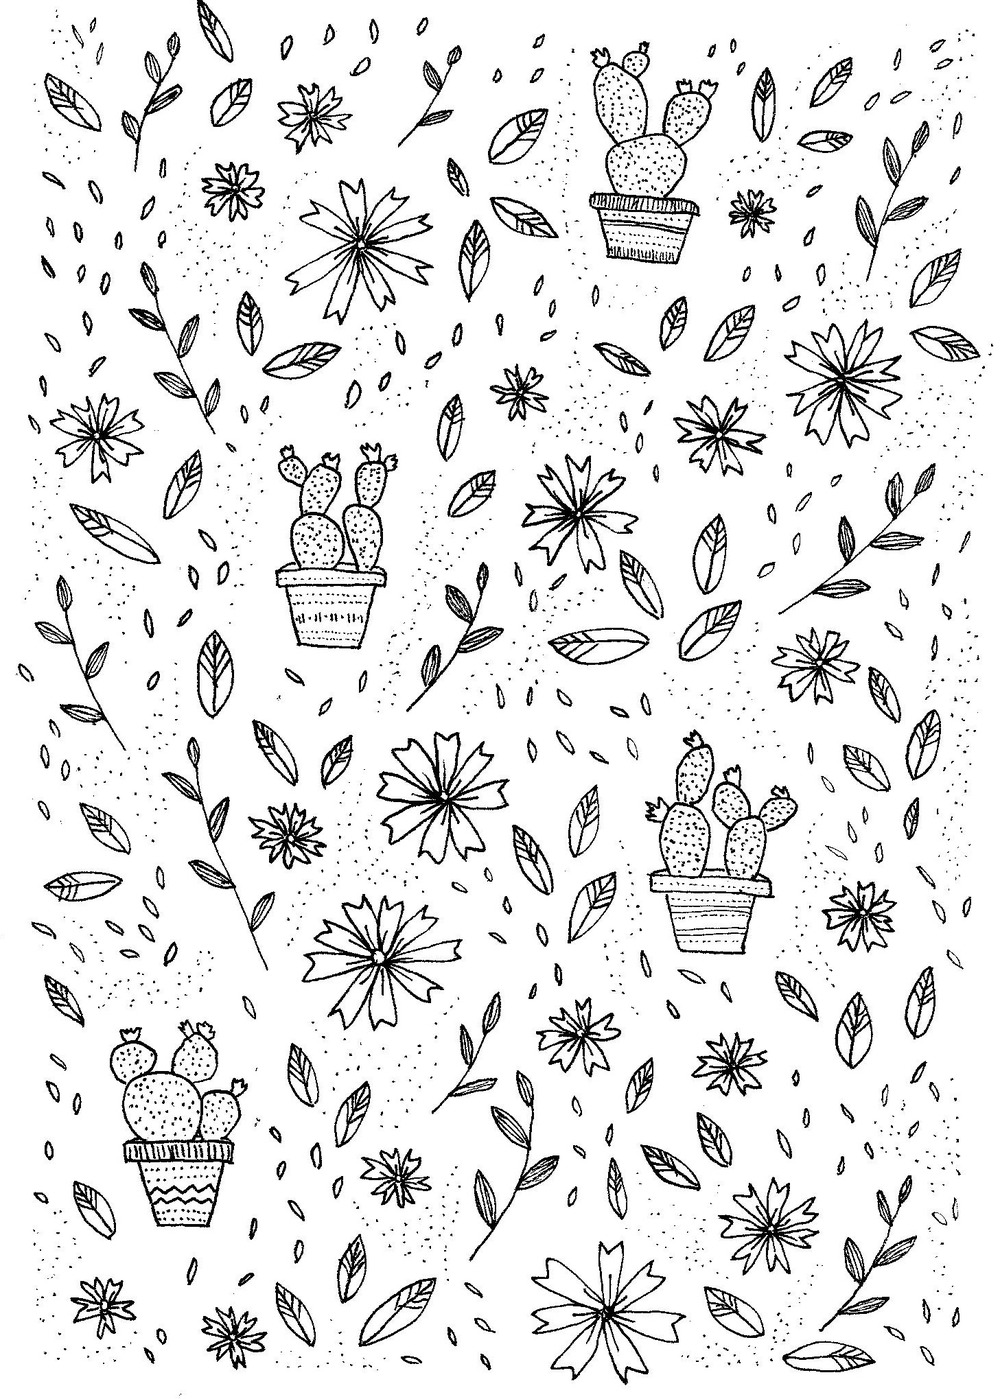 Cactus and flower pattern - ink on paper